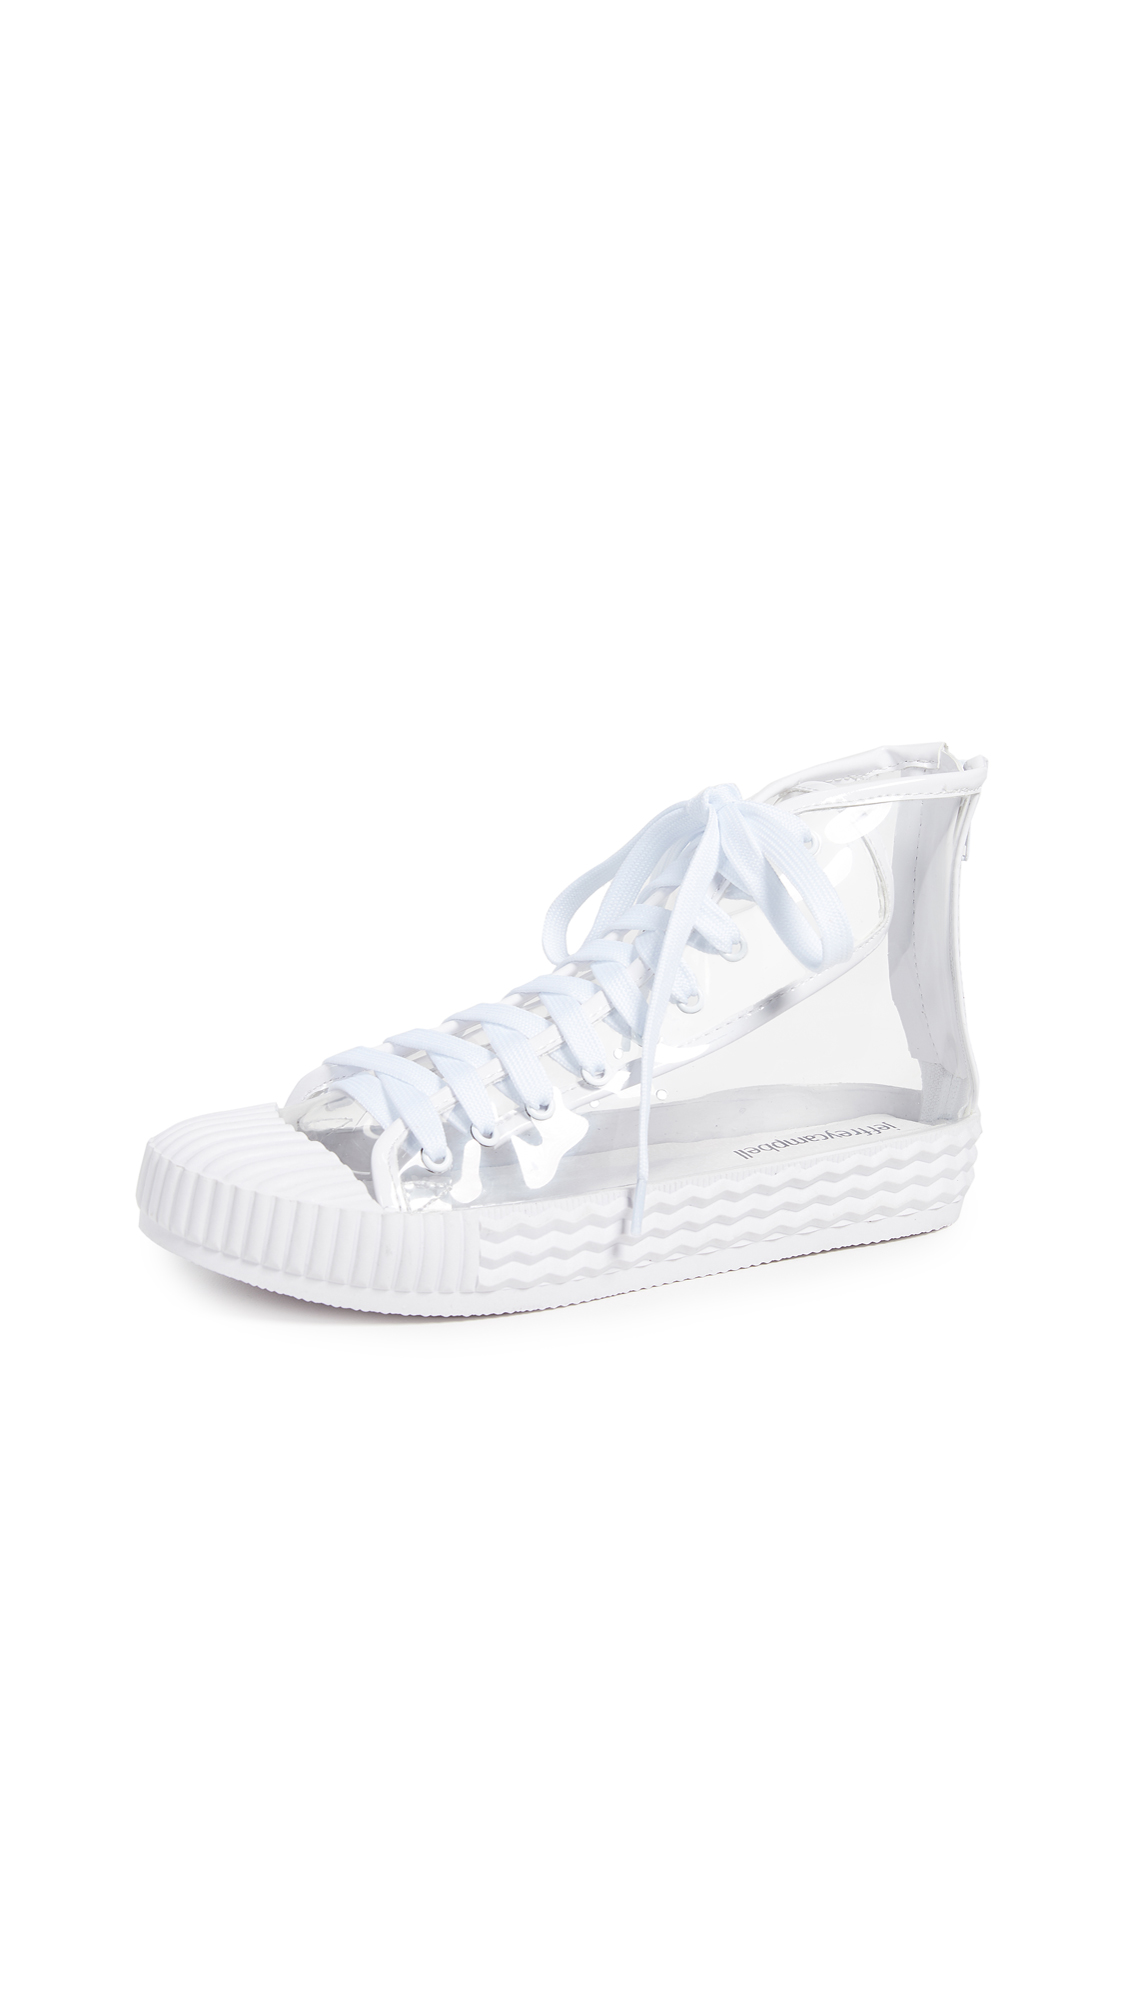 Jeffrey Campbell Ganador Vinyl High Top Sneakers - Clear White